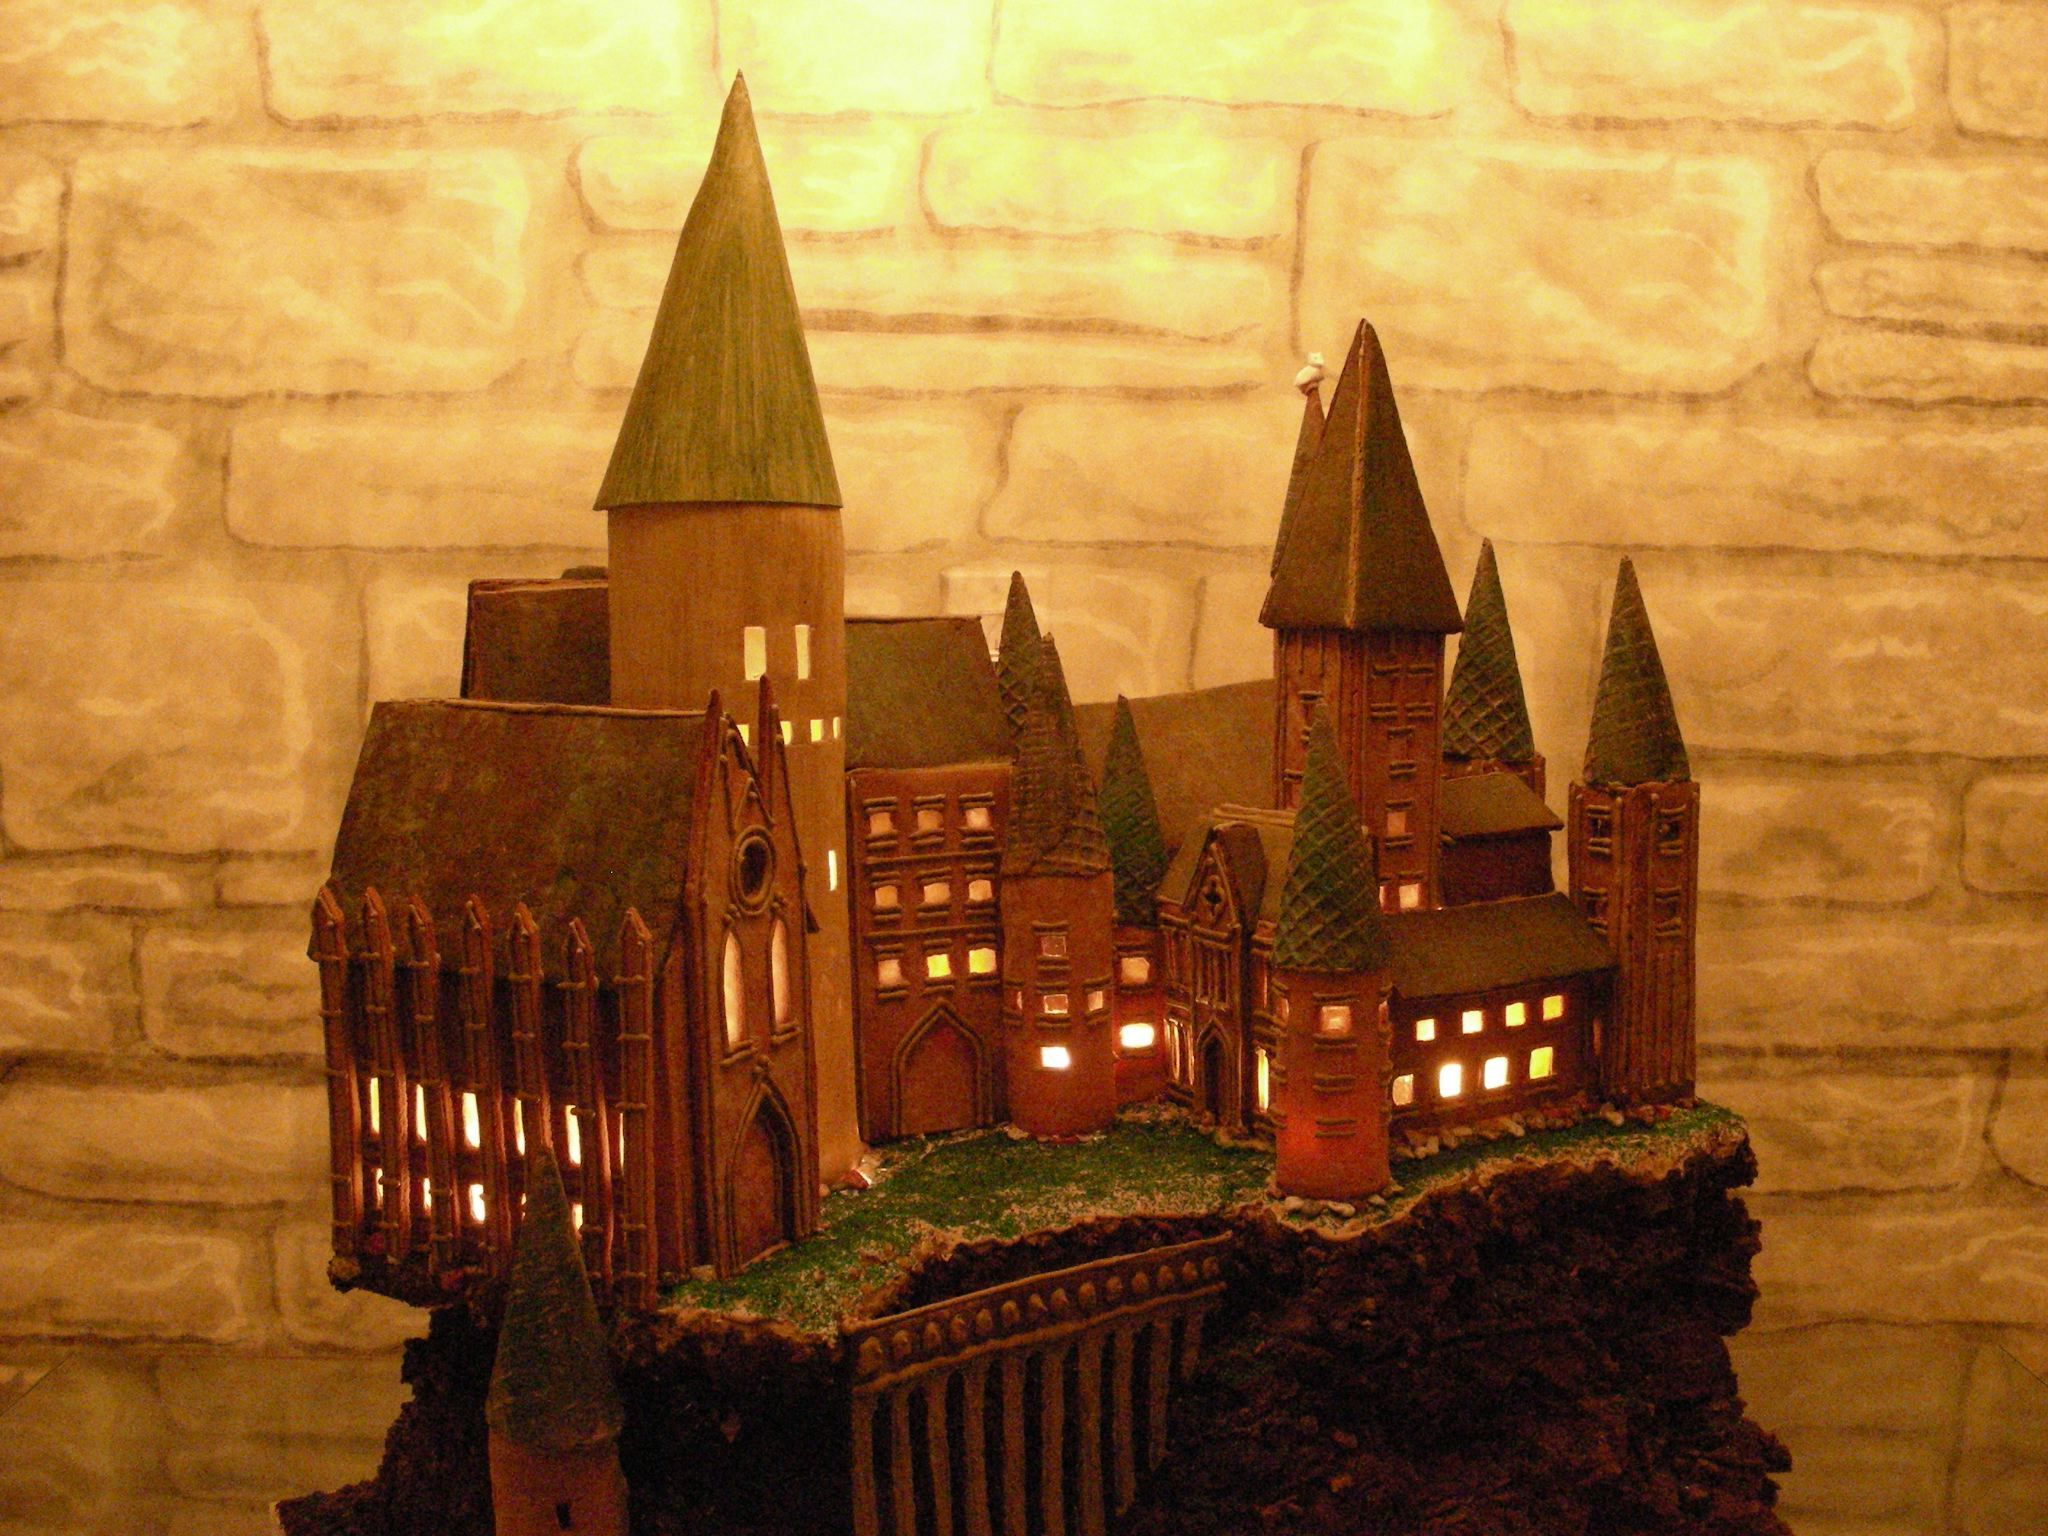 Hogwarts Gingerbread Castle -- complete with internal lighting.  Amazing!  (Sadly, the article where I found it did not have the artist's name.)